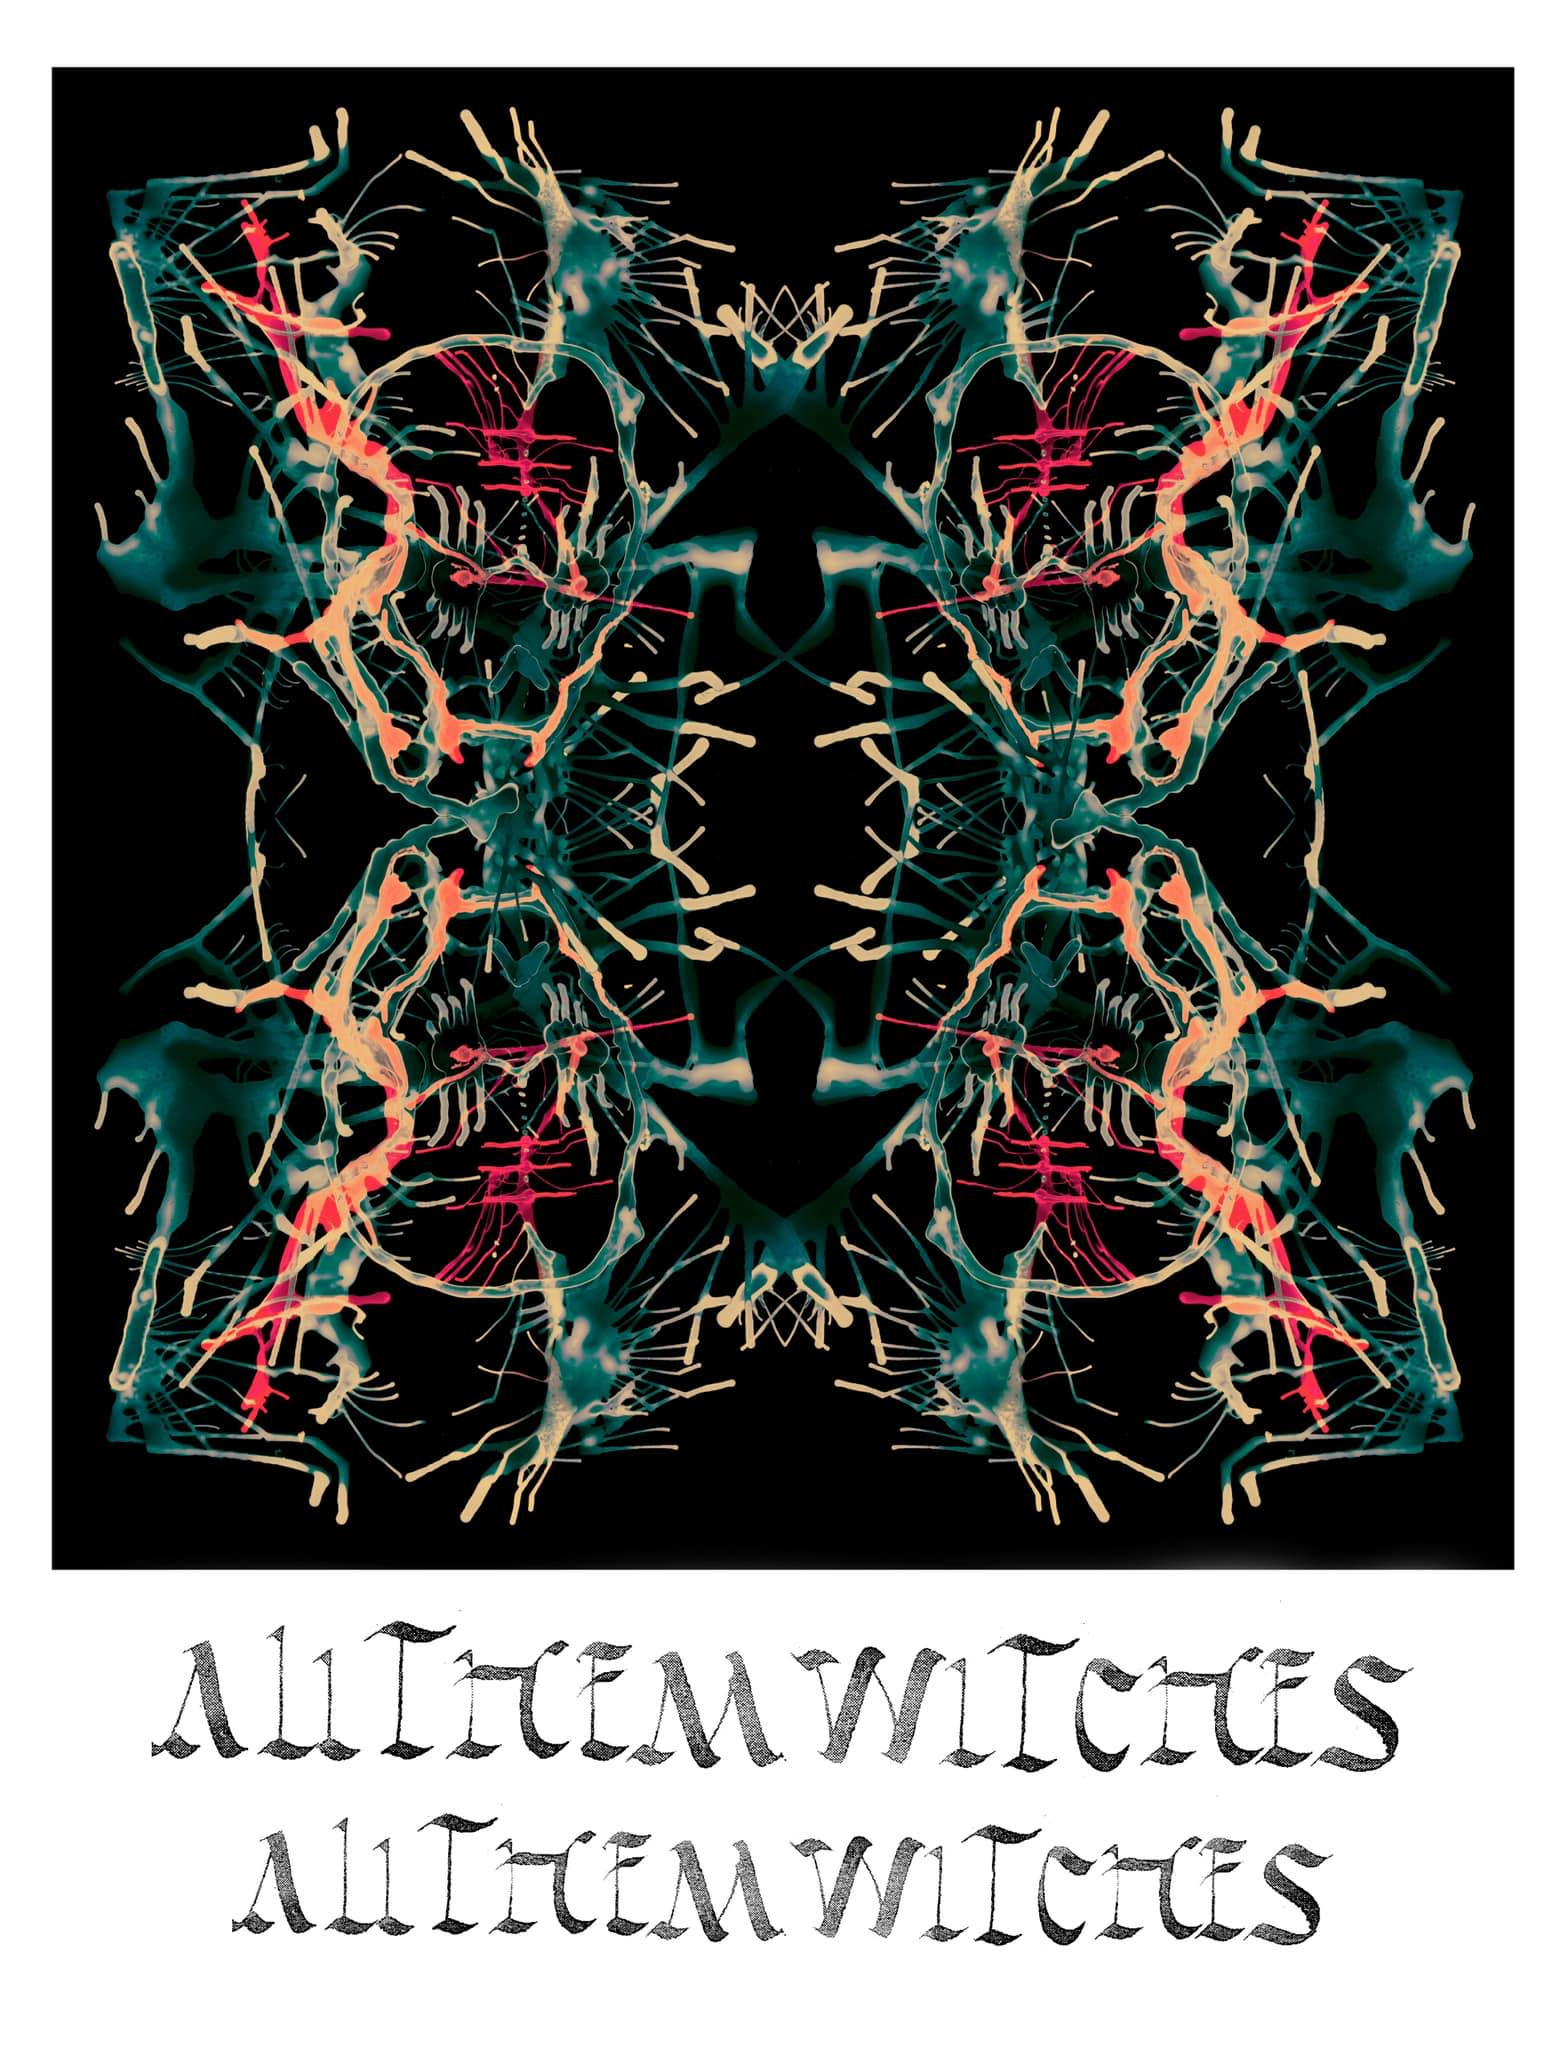 all them witches concert